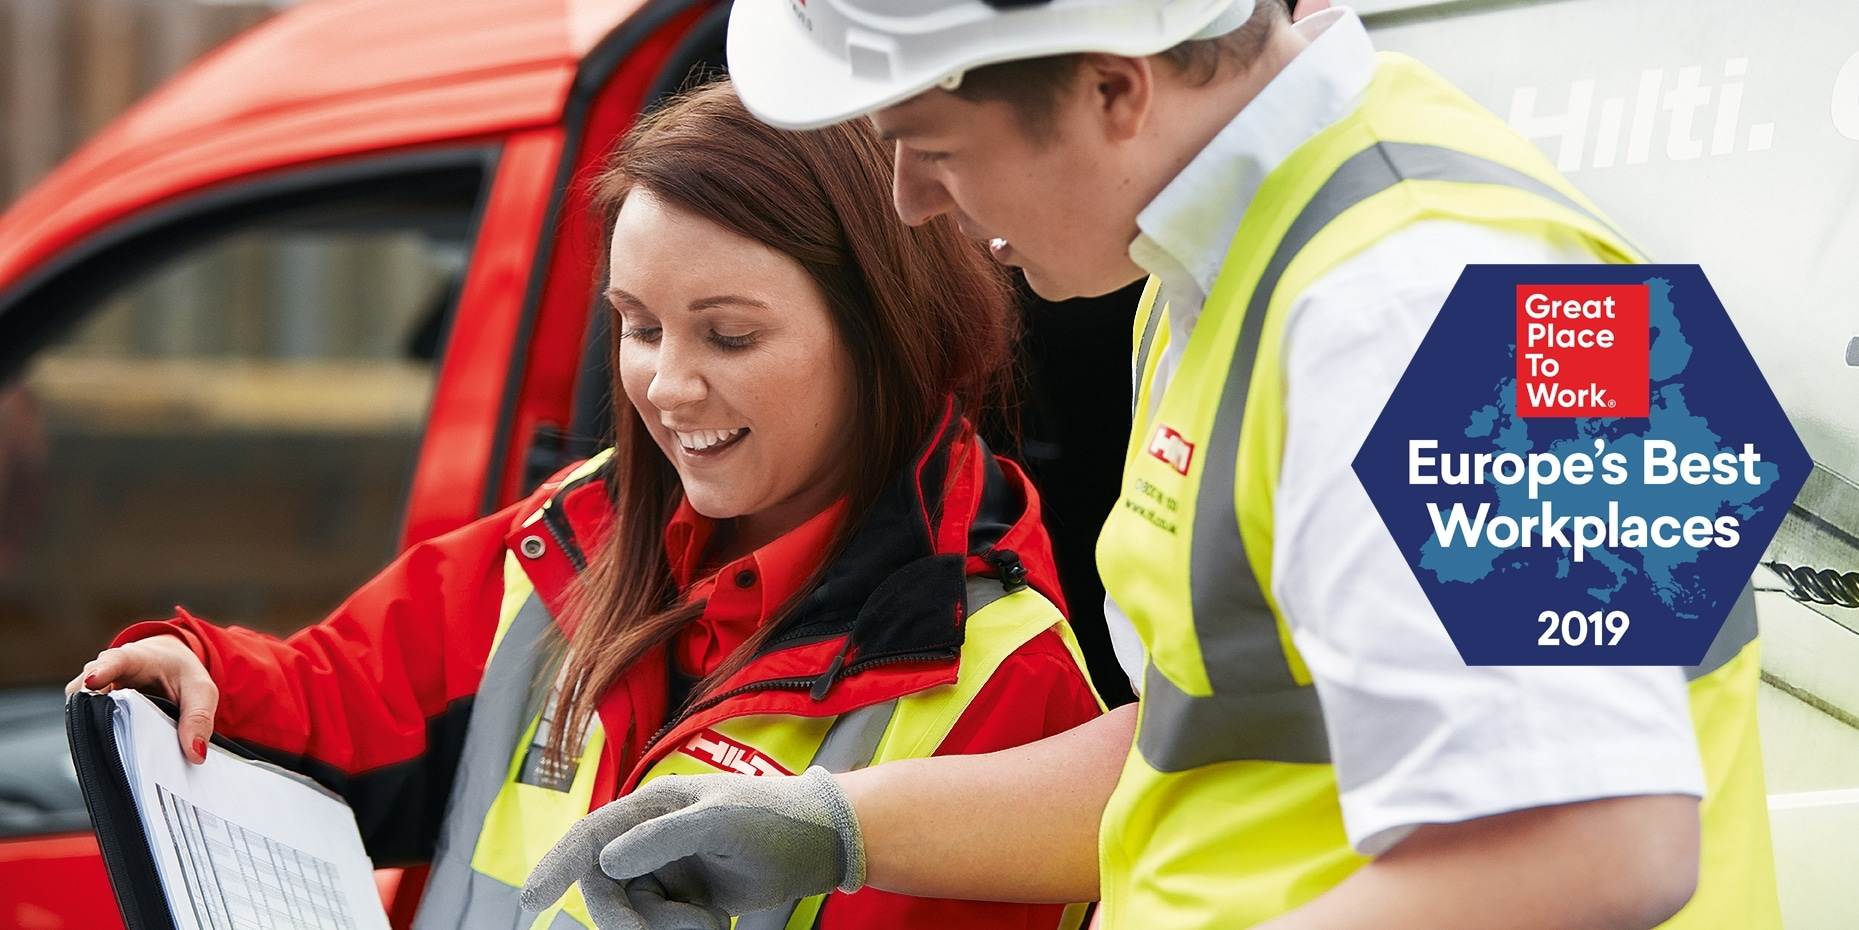 HILTI RANKS AMONG EUROPE'S BEST EMPLOYERS